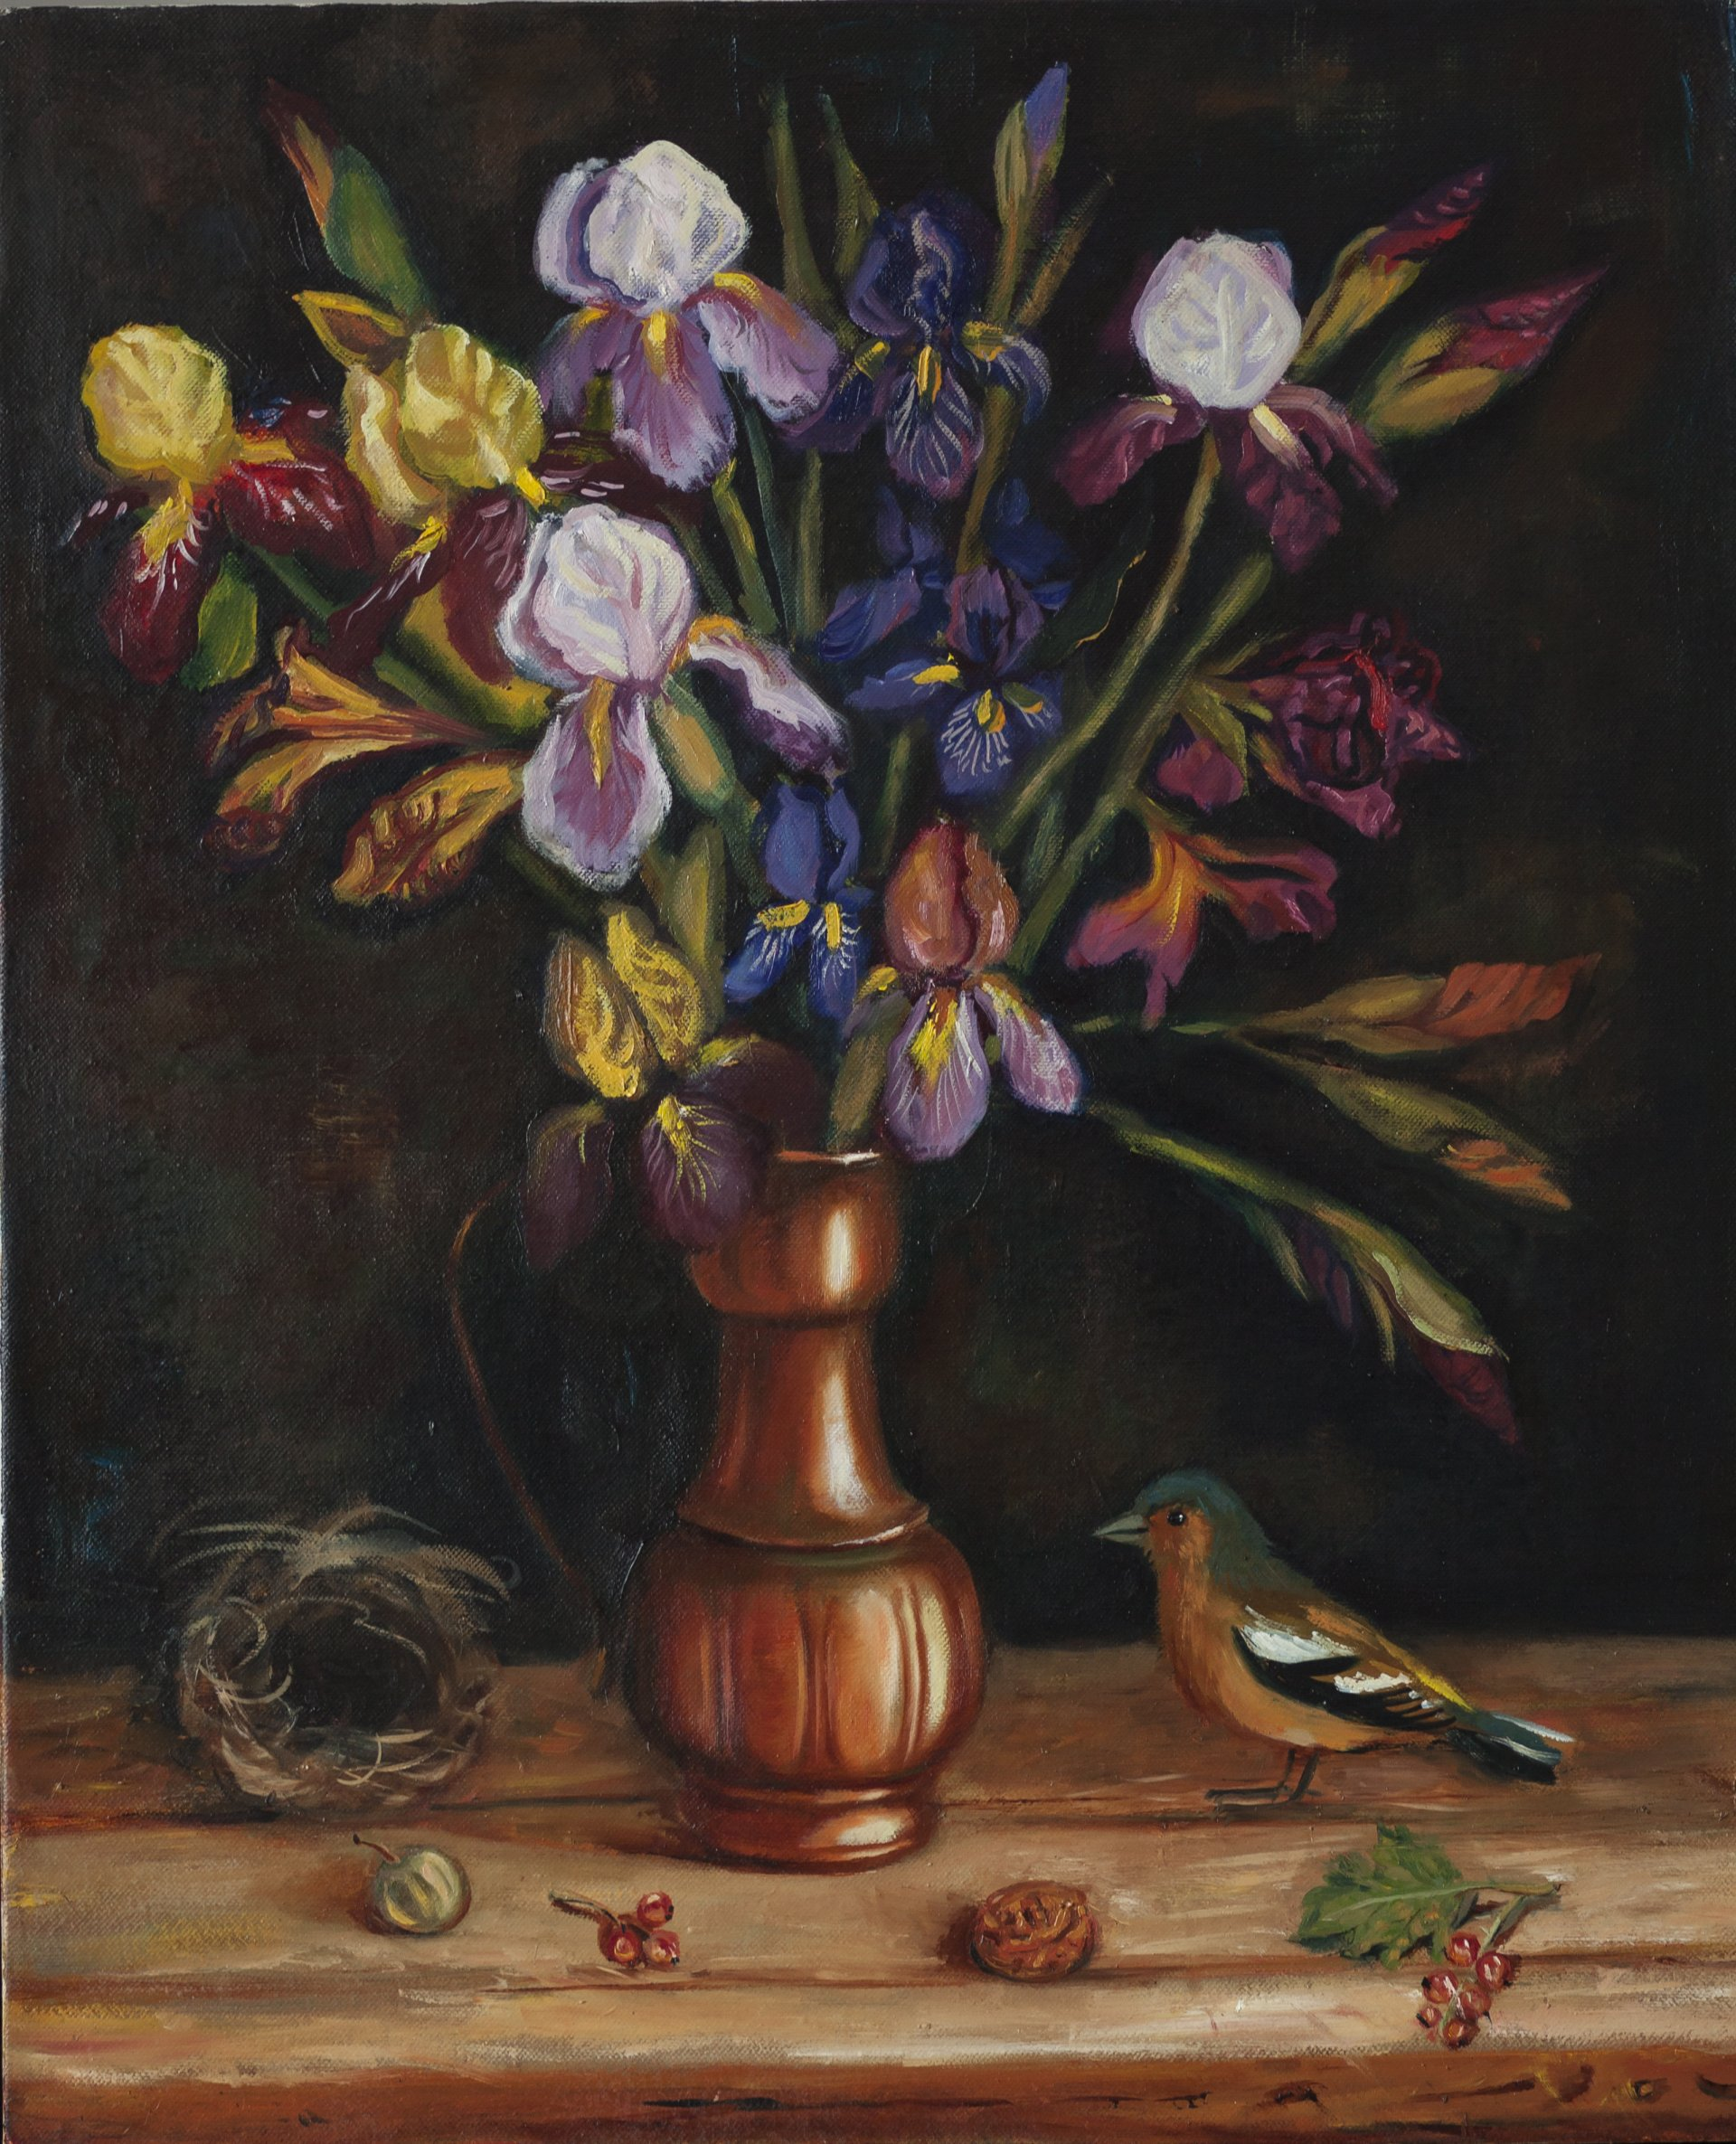 A bouquet of irises and poultry